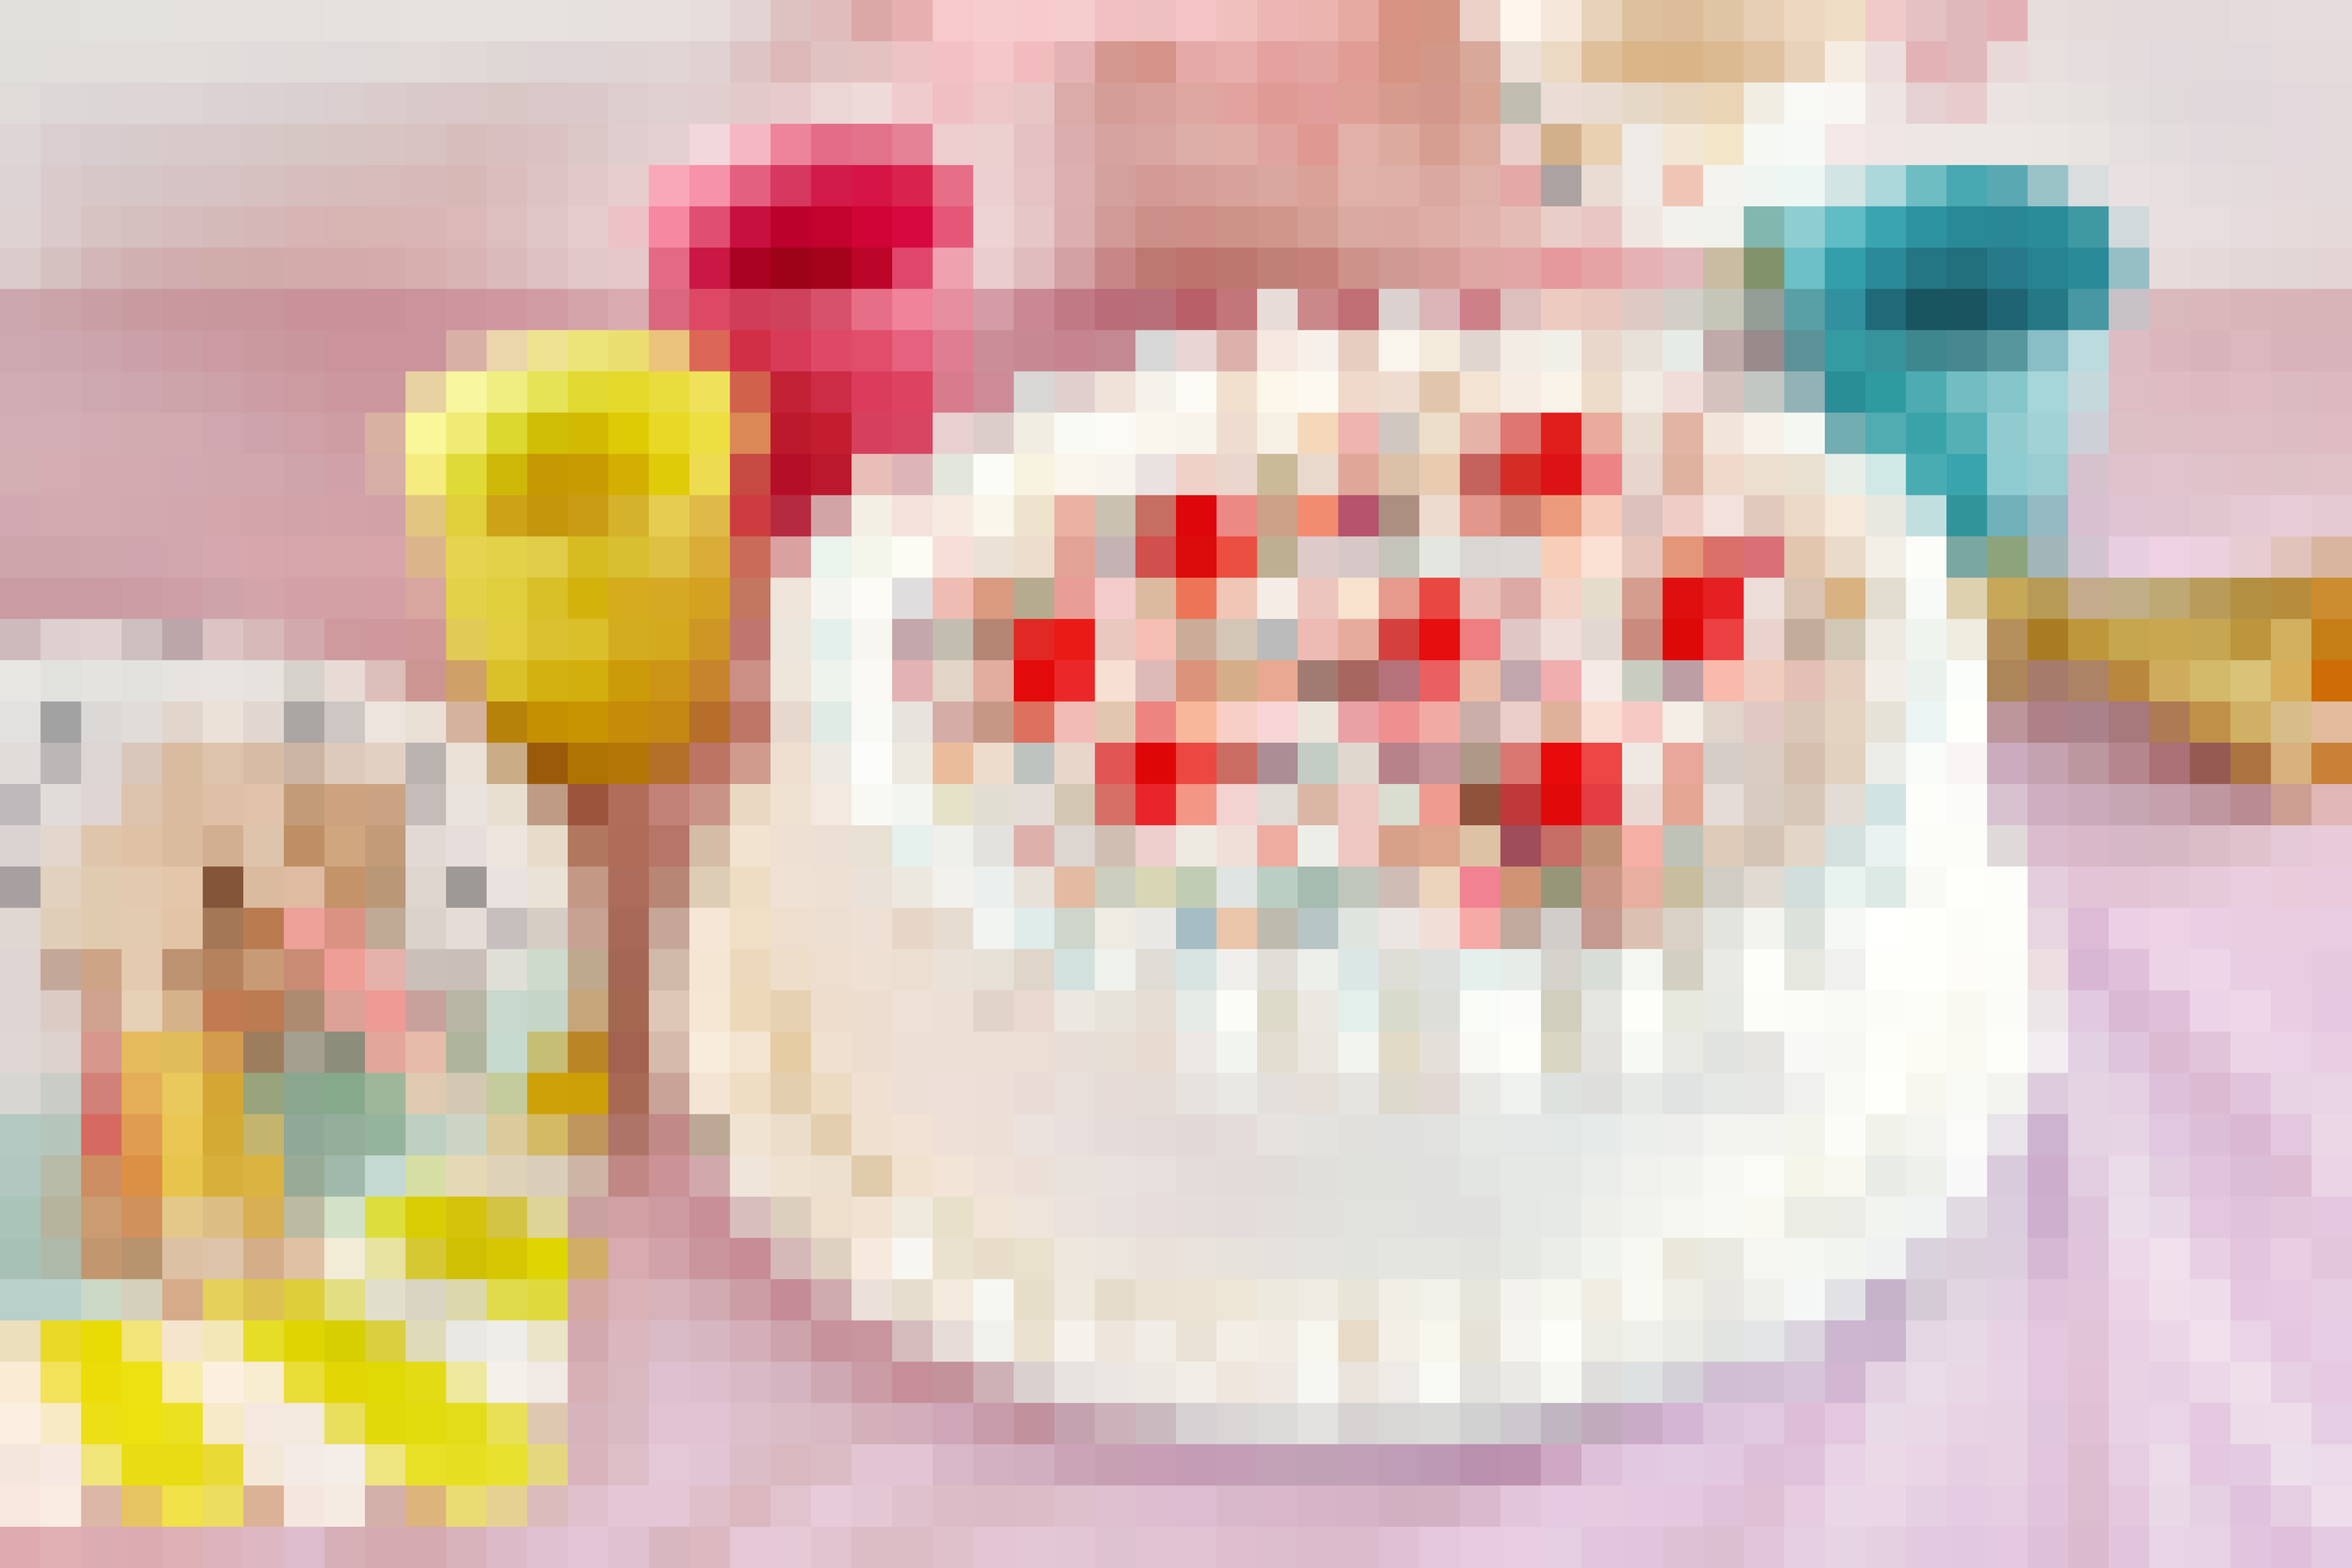 How To Make an Ice Cream Cake (Even Better than Dairy Queen!): gallery image 12